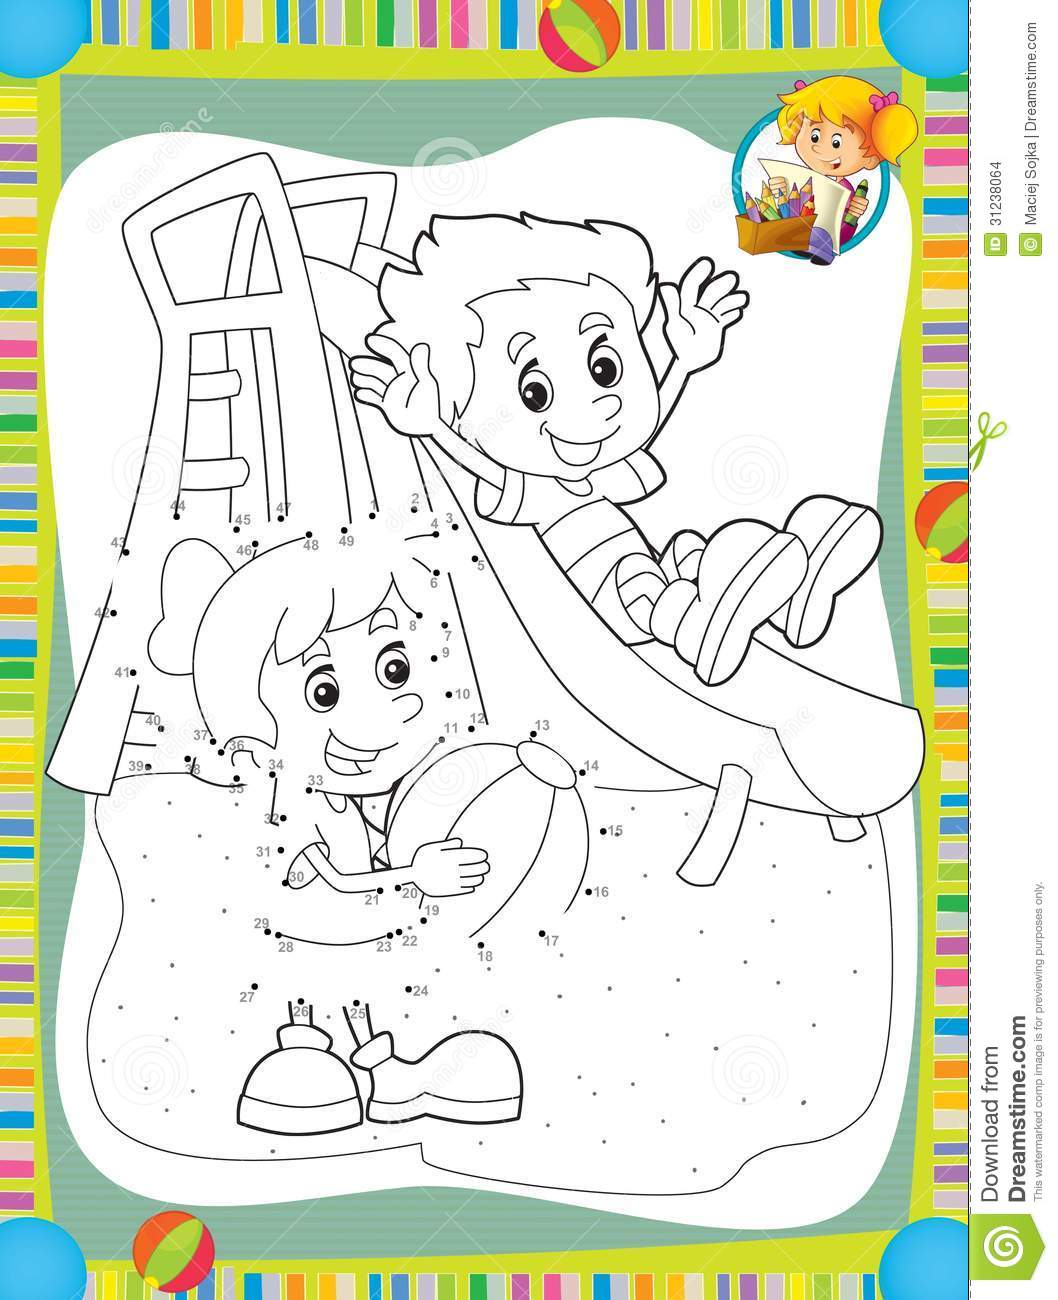 The Page With Exercises For Kids